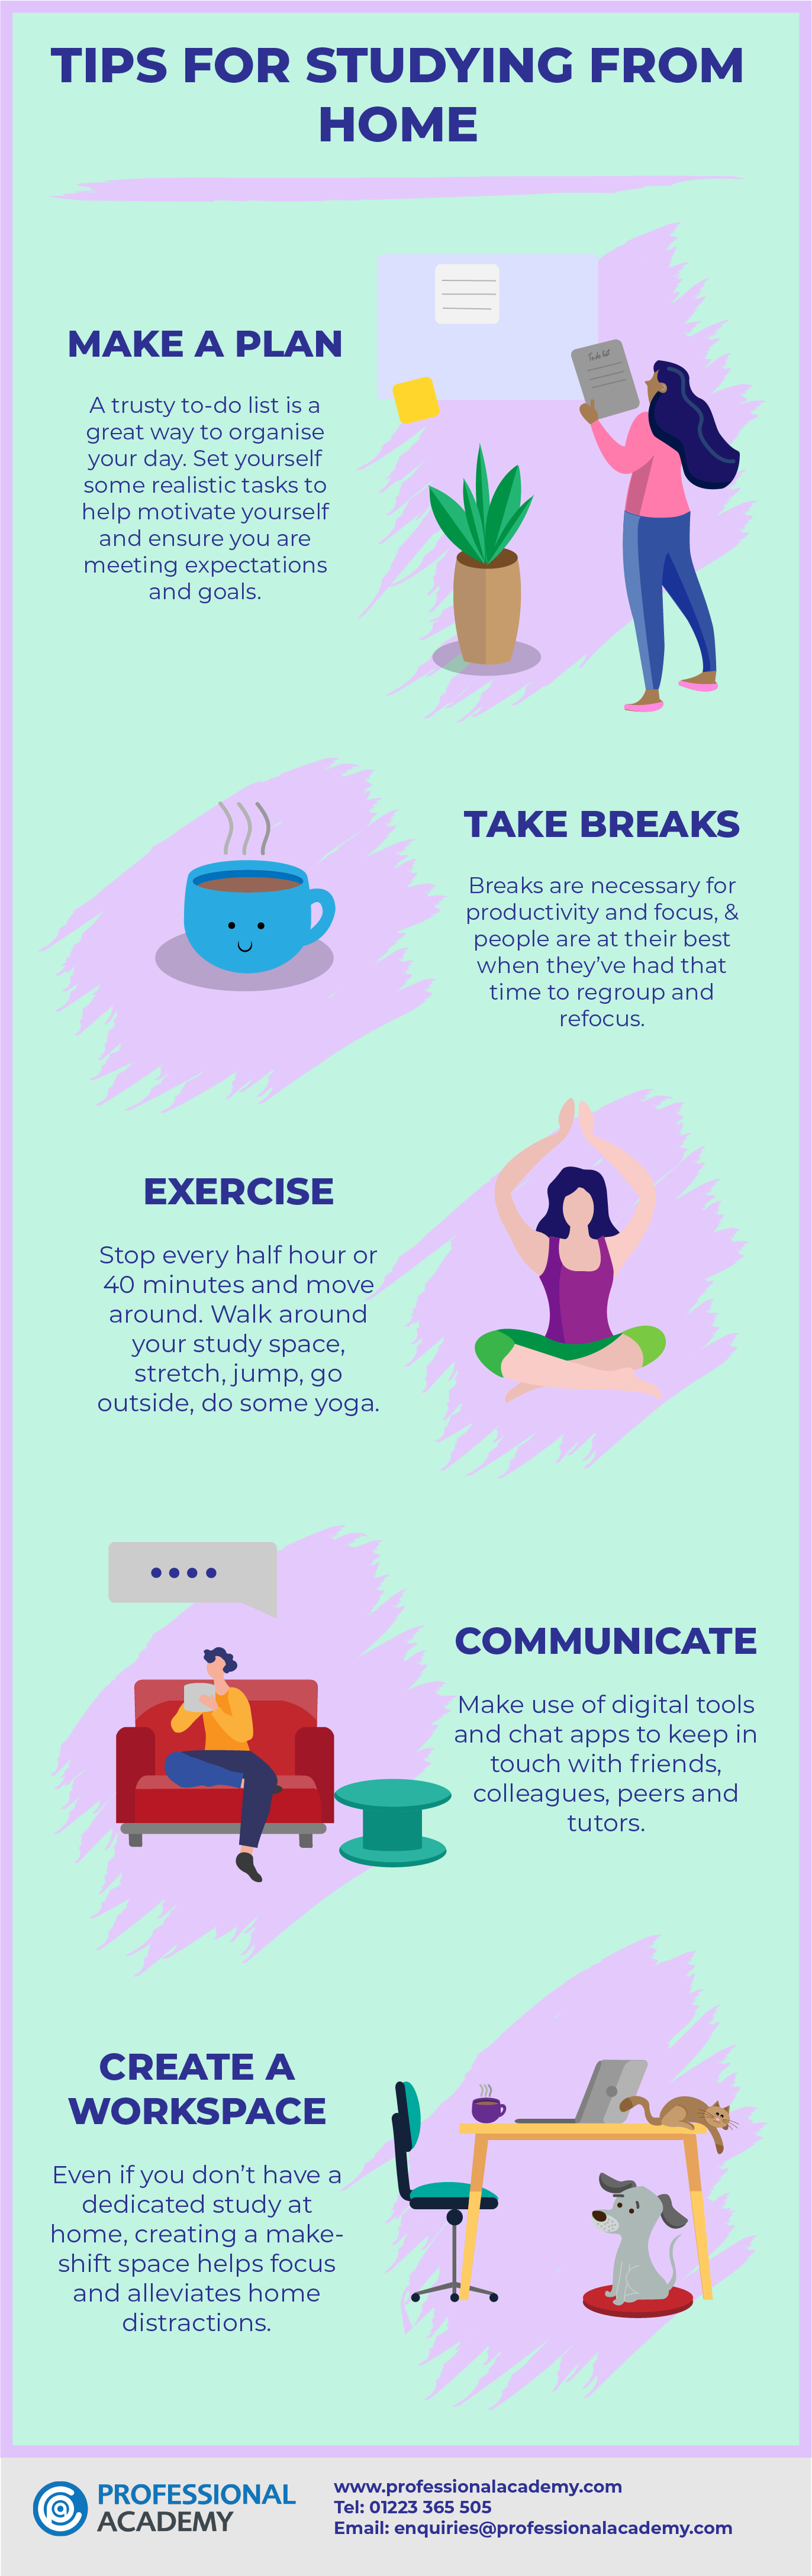 Tips on studying from home infographic